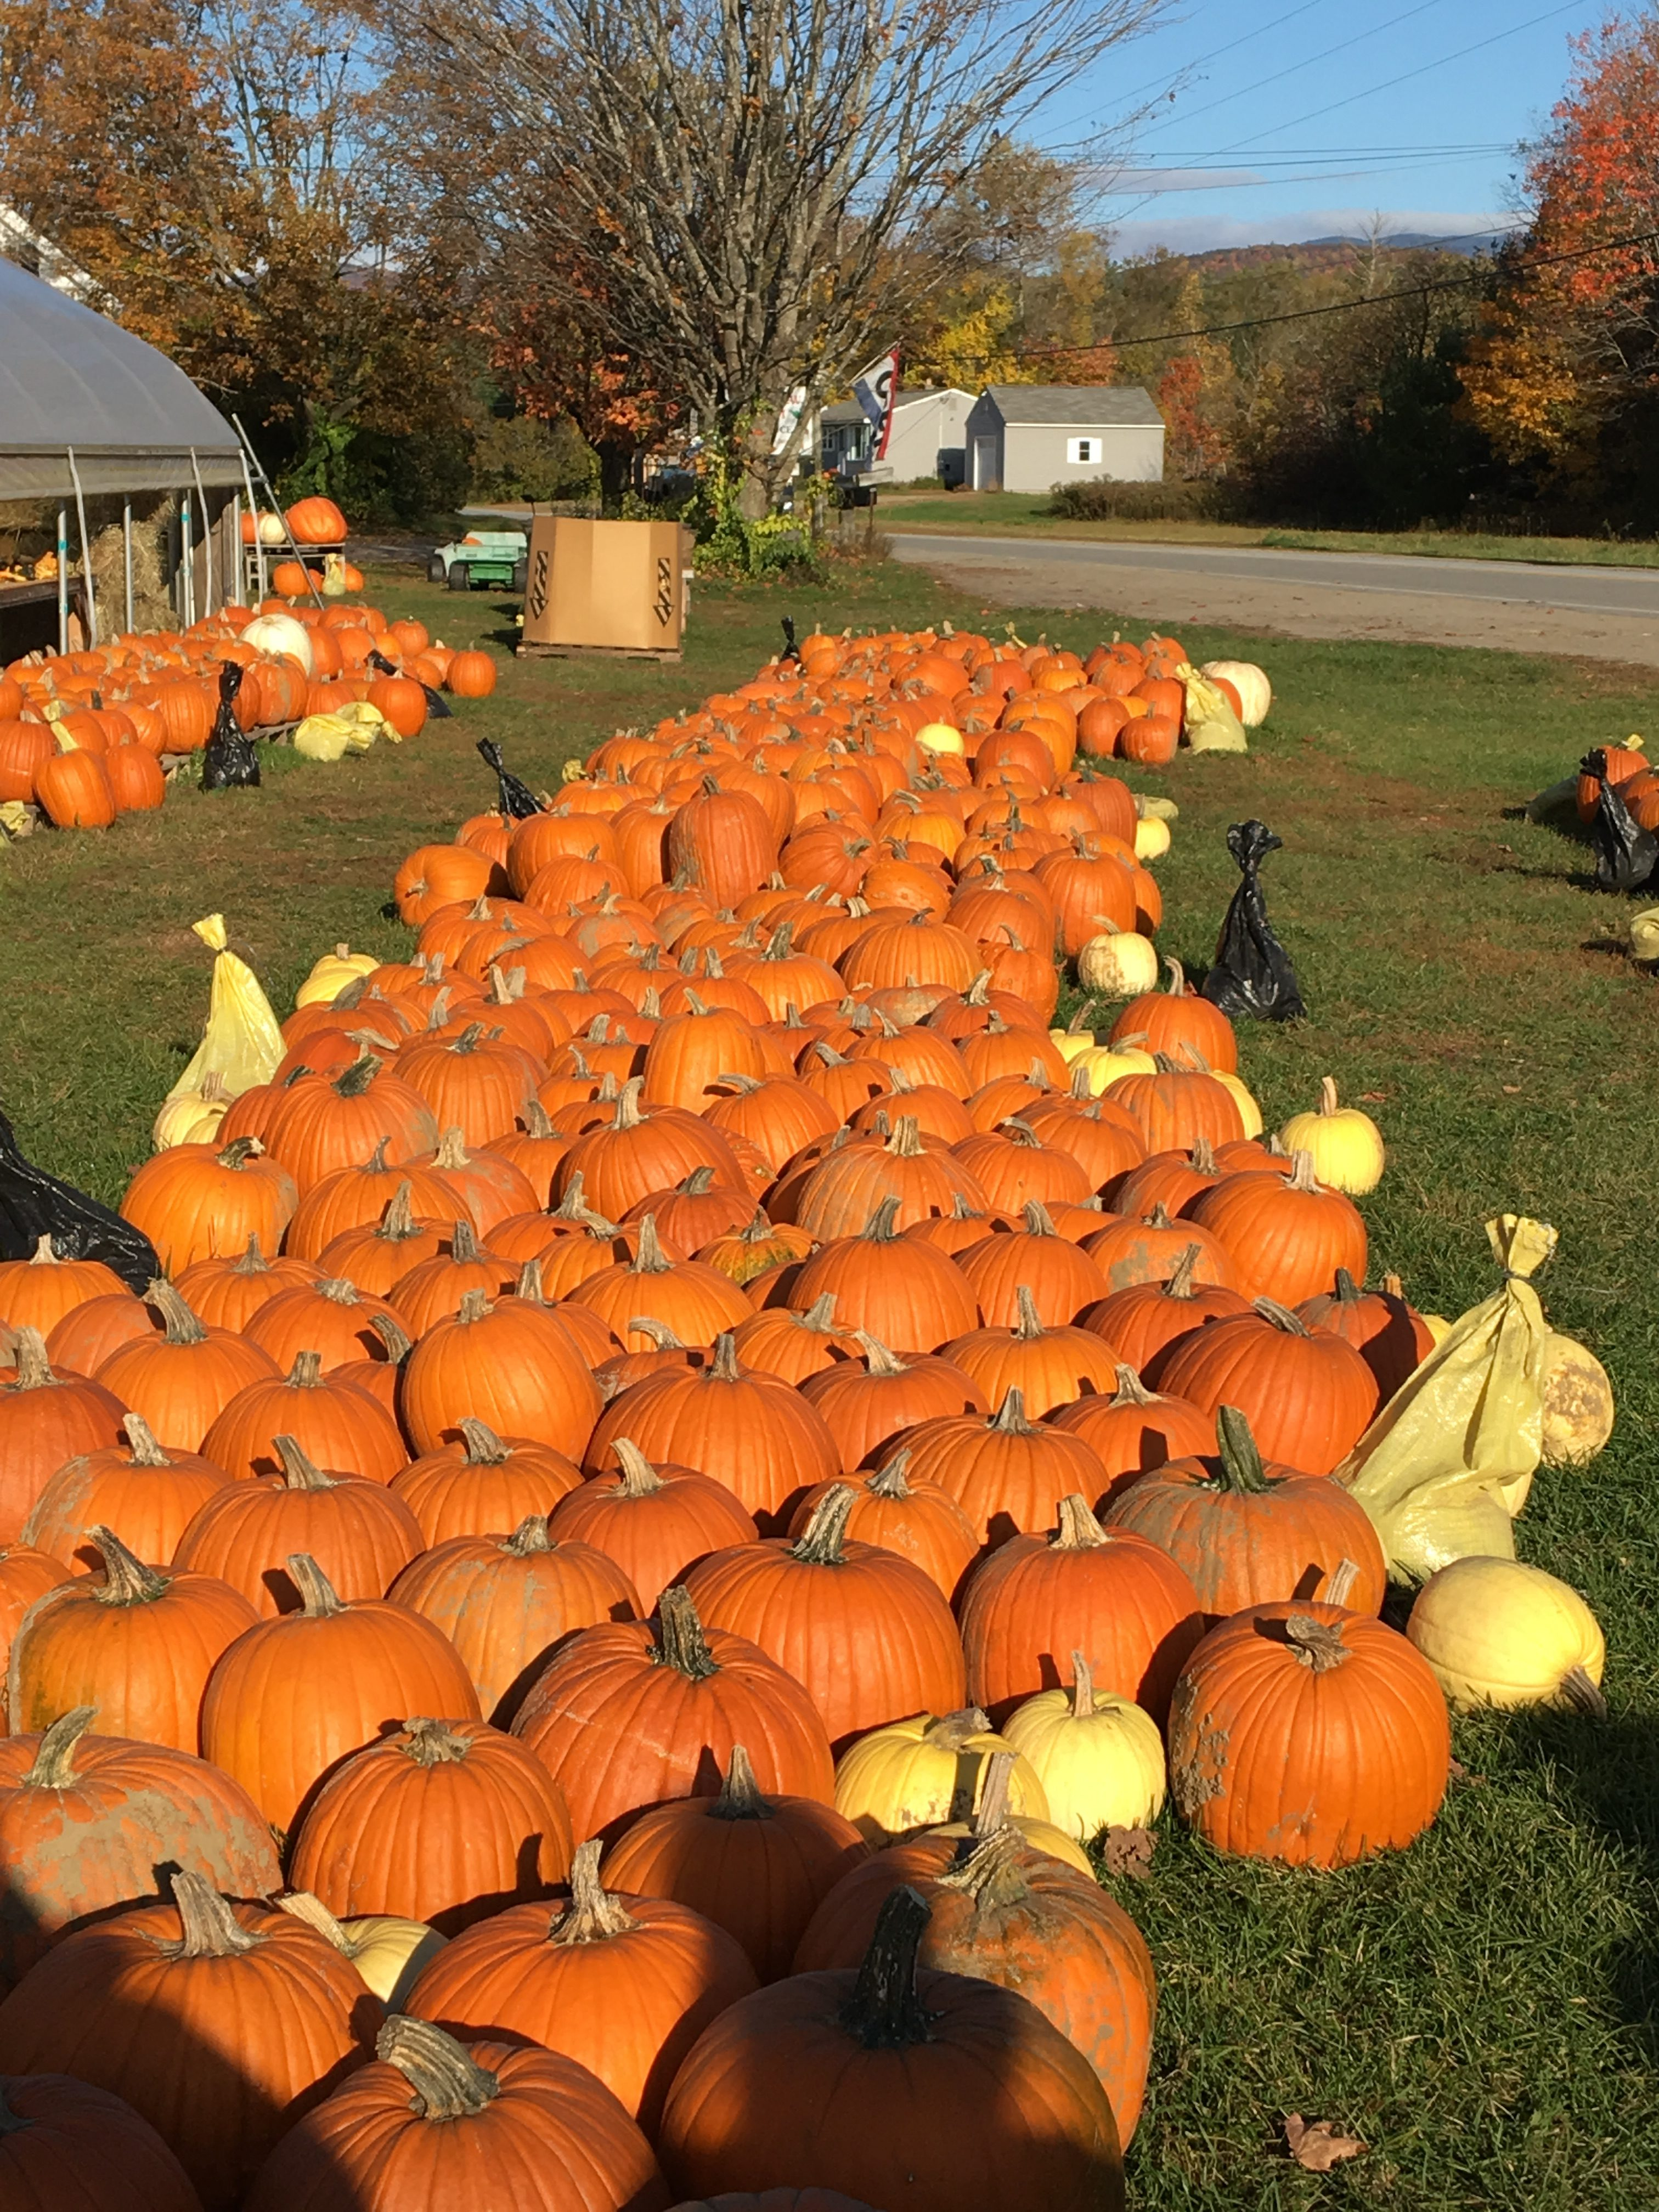 A very large group of bright orange pumpkins, on the grass at a roadside farm.